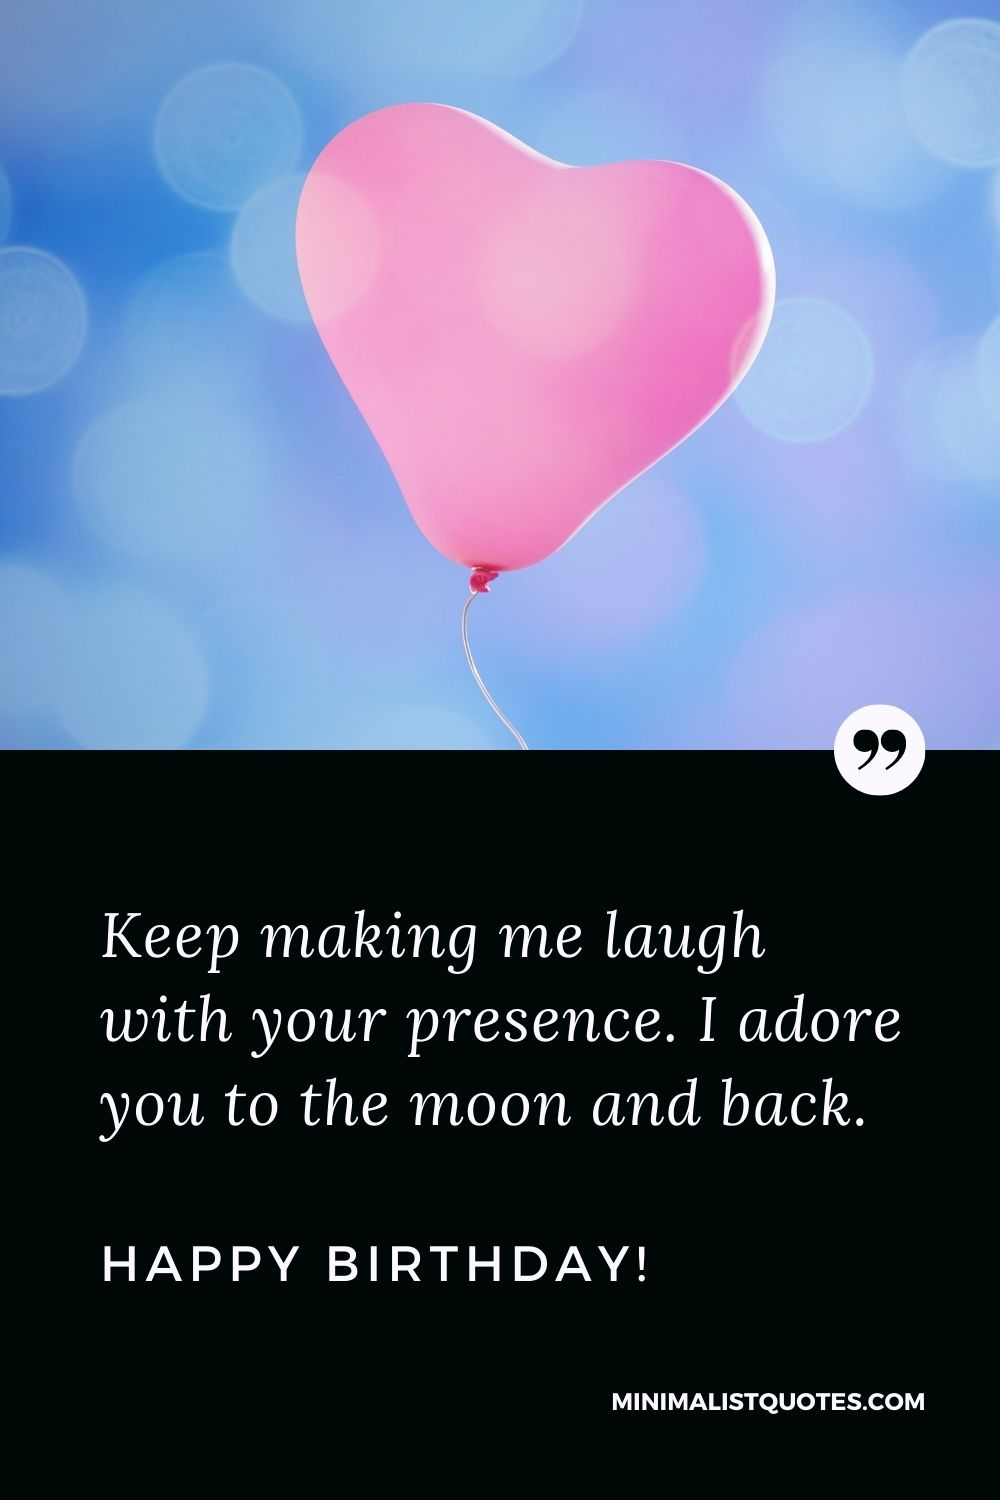 Birthday Quote, Wish & Message With Image: Keep making me laugh with your presence. I adore you to the moon and back. Happy Birthday!